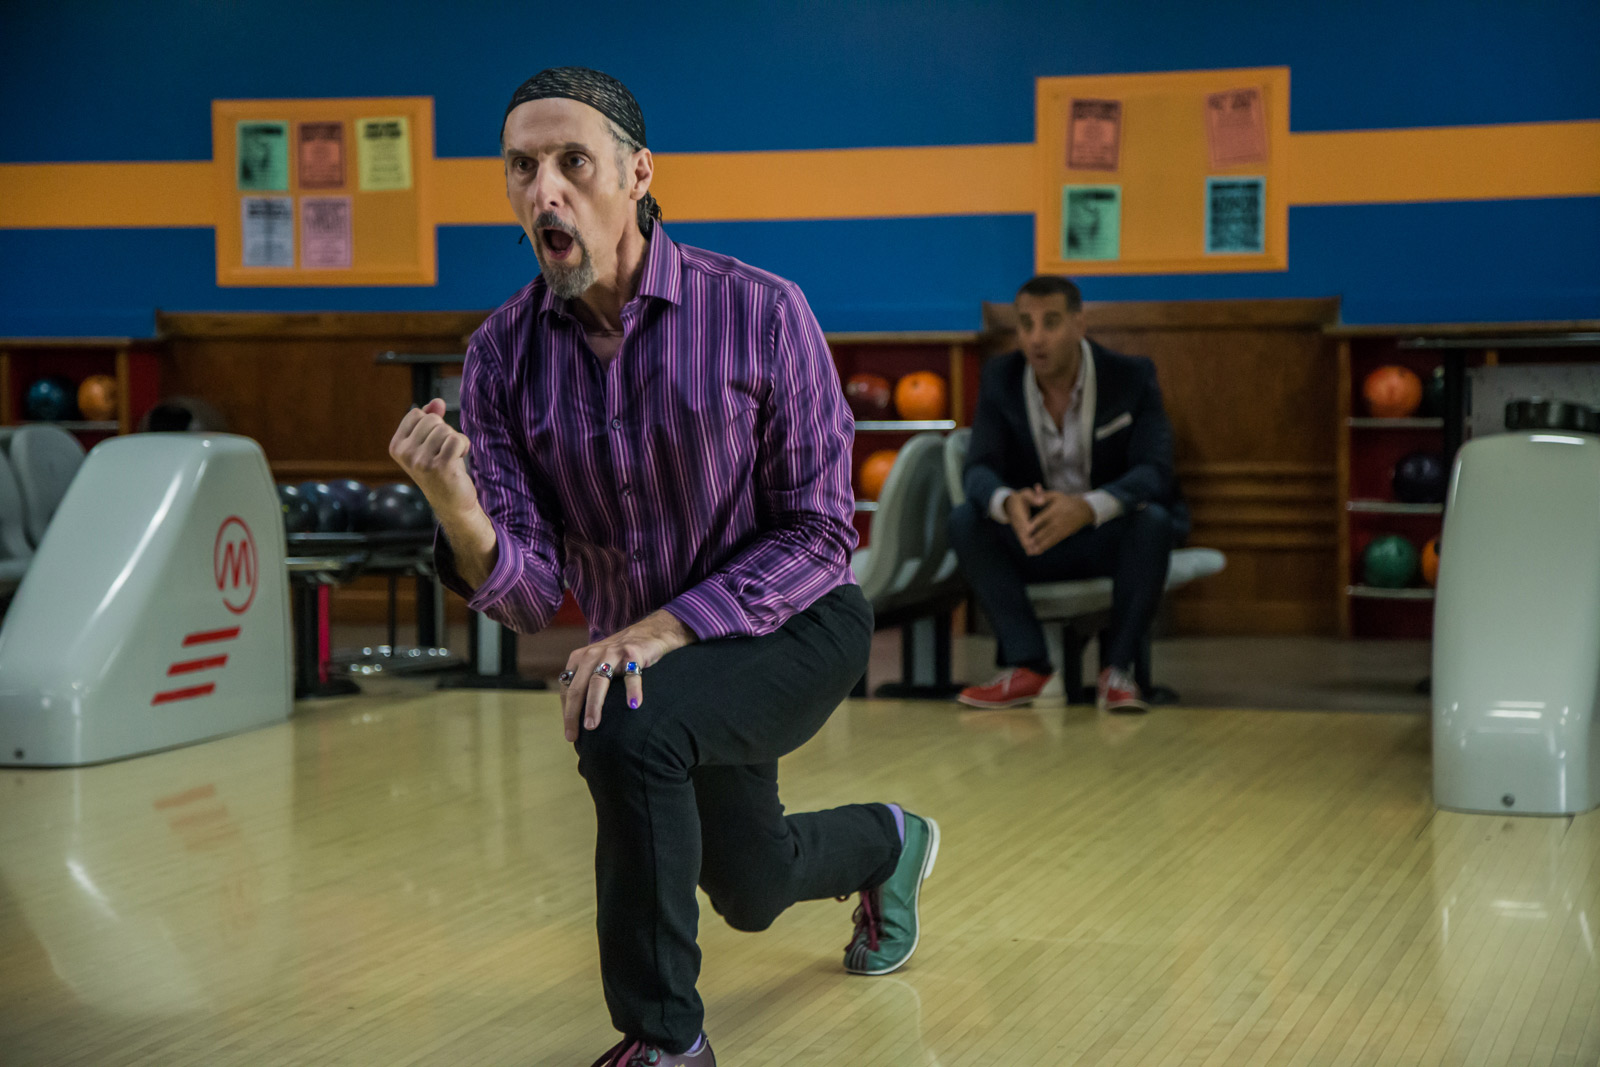 John Turturro Returns to the Bowling Alley in New Trailer for 'The Jesus Rolls'